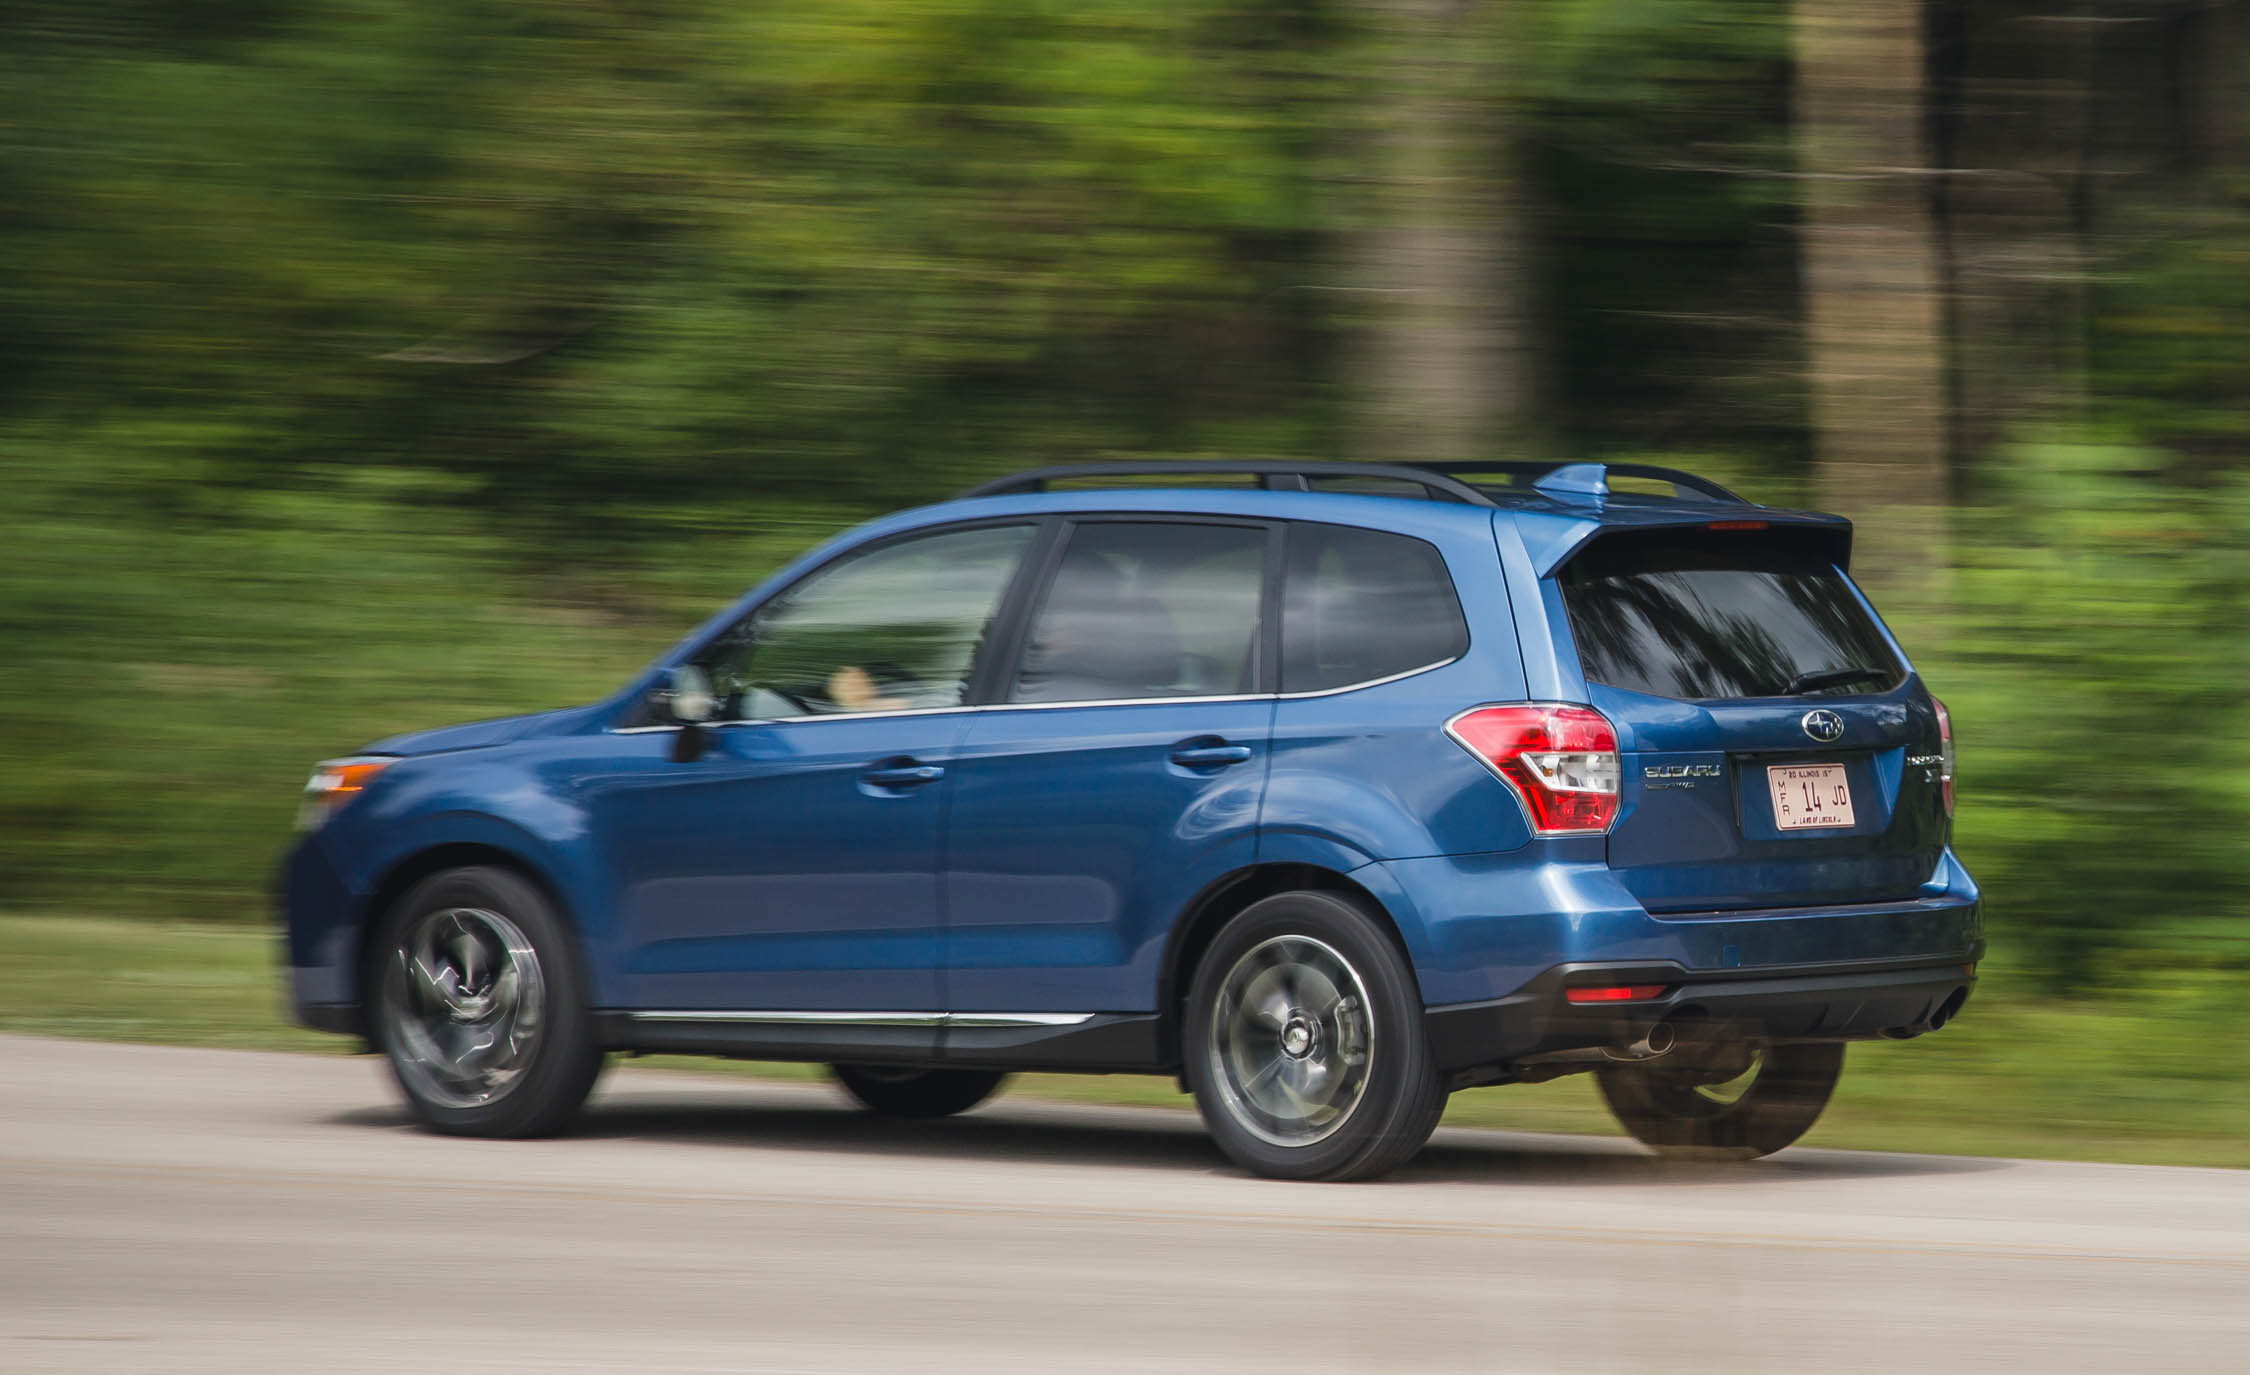 2016 Subaru Forester 2 0xt Touring Test Rear And Side View (Photo 28 of 29)